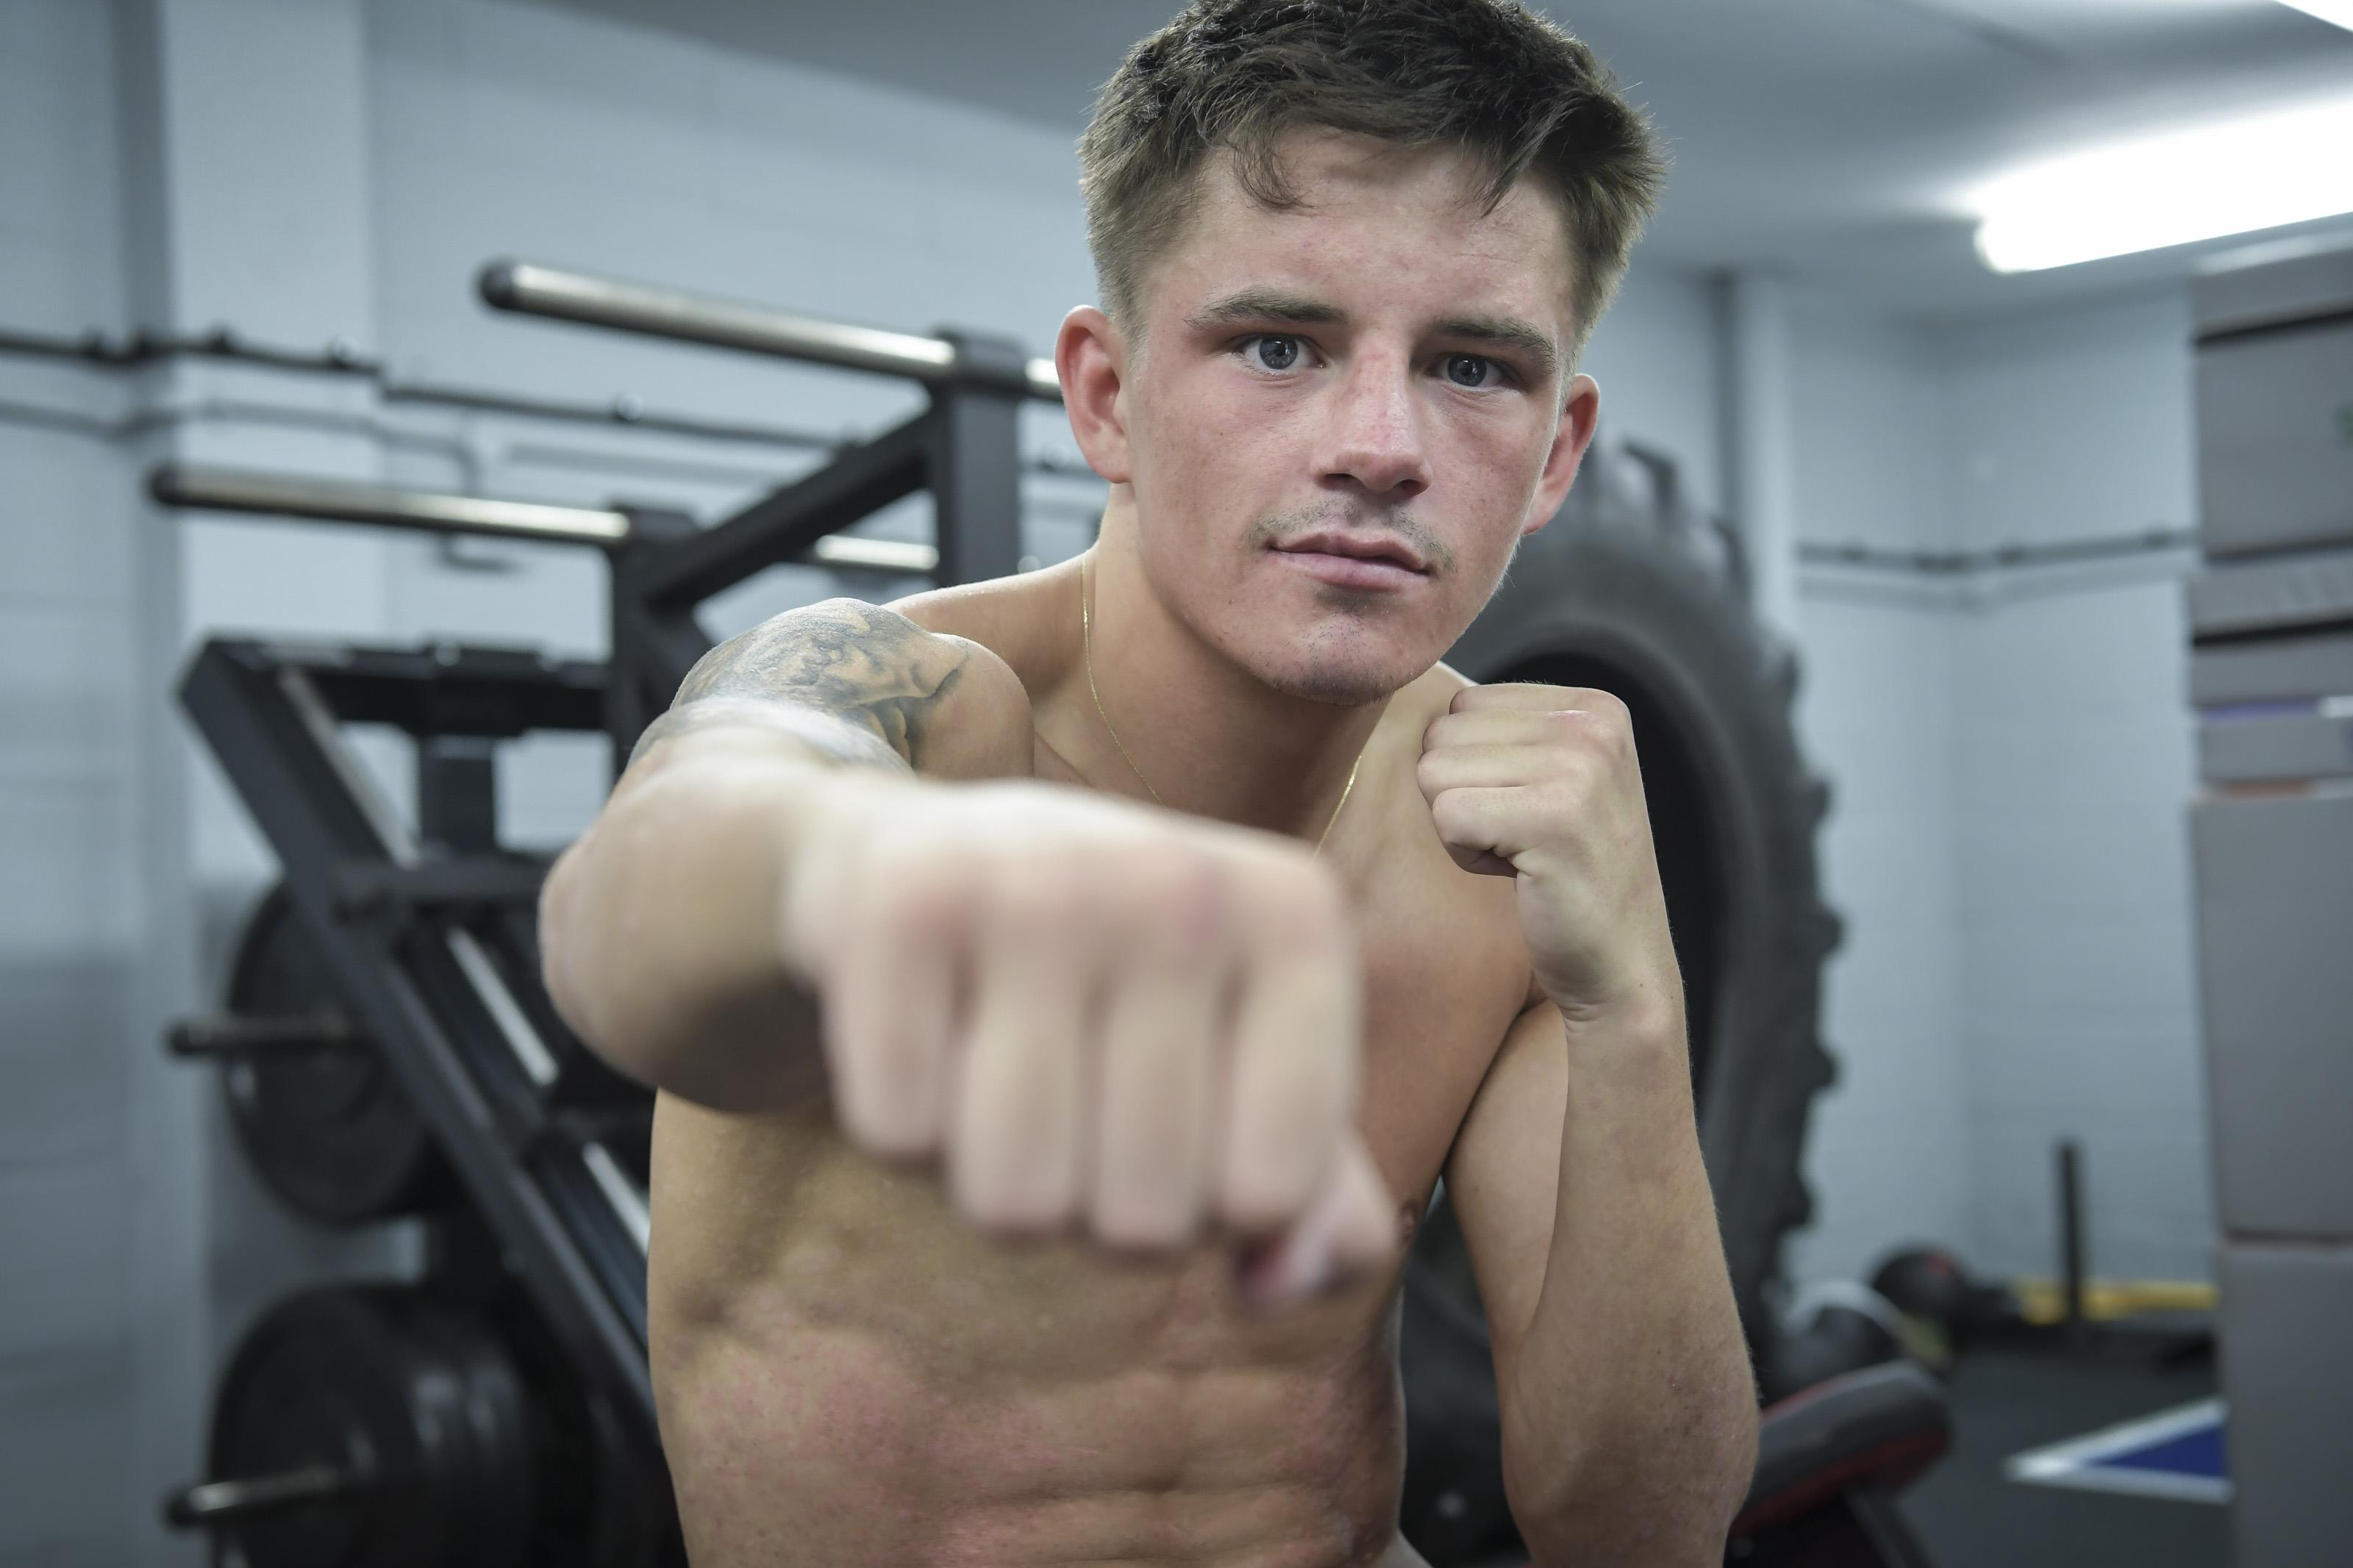 Lee McGregor is preparing for the biggest fight of his life knowing his loved ones are looking down on him